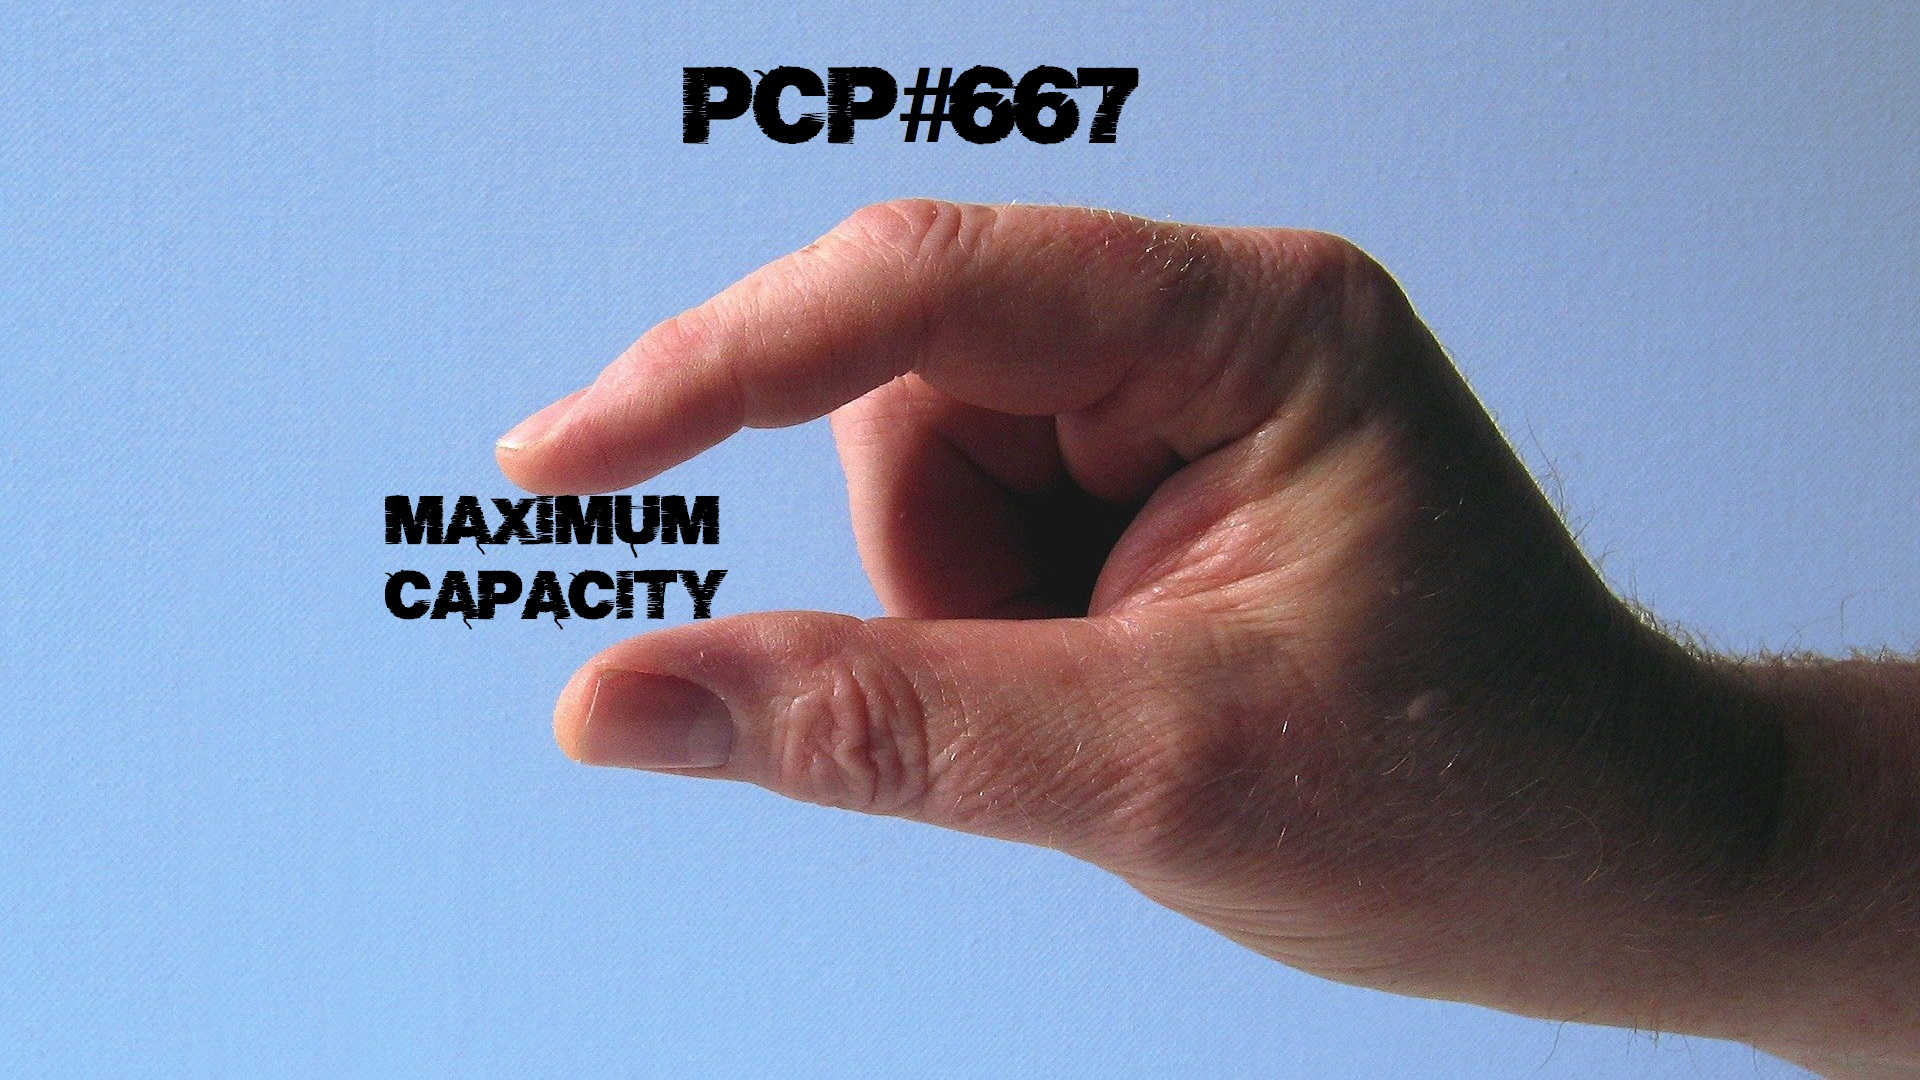 PCP#667… Maximum Capacity…